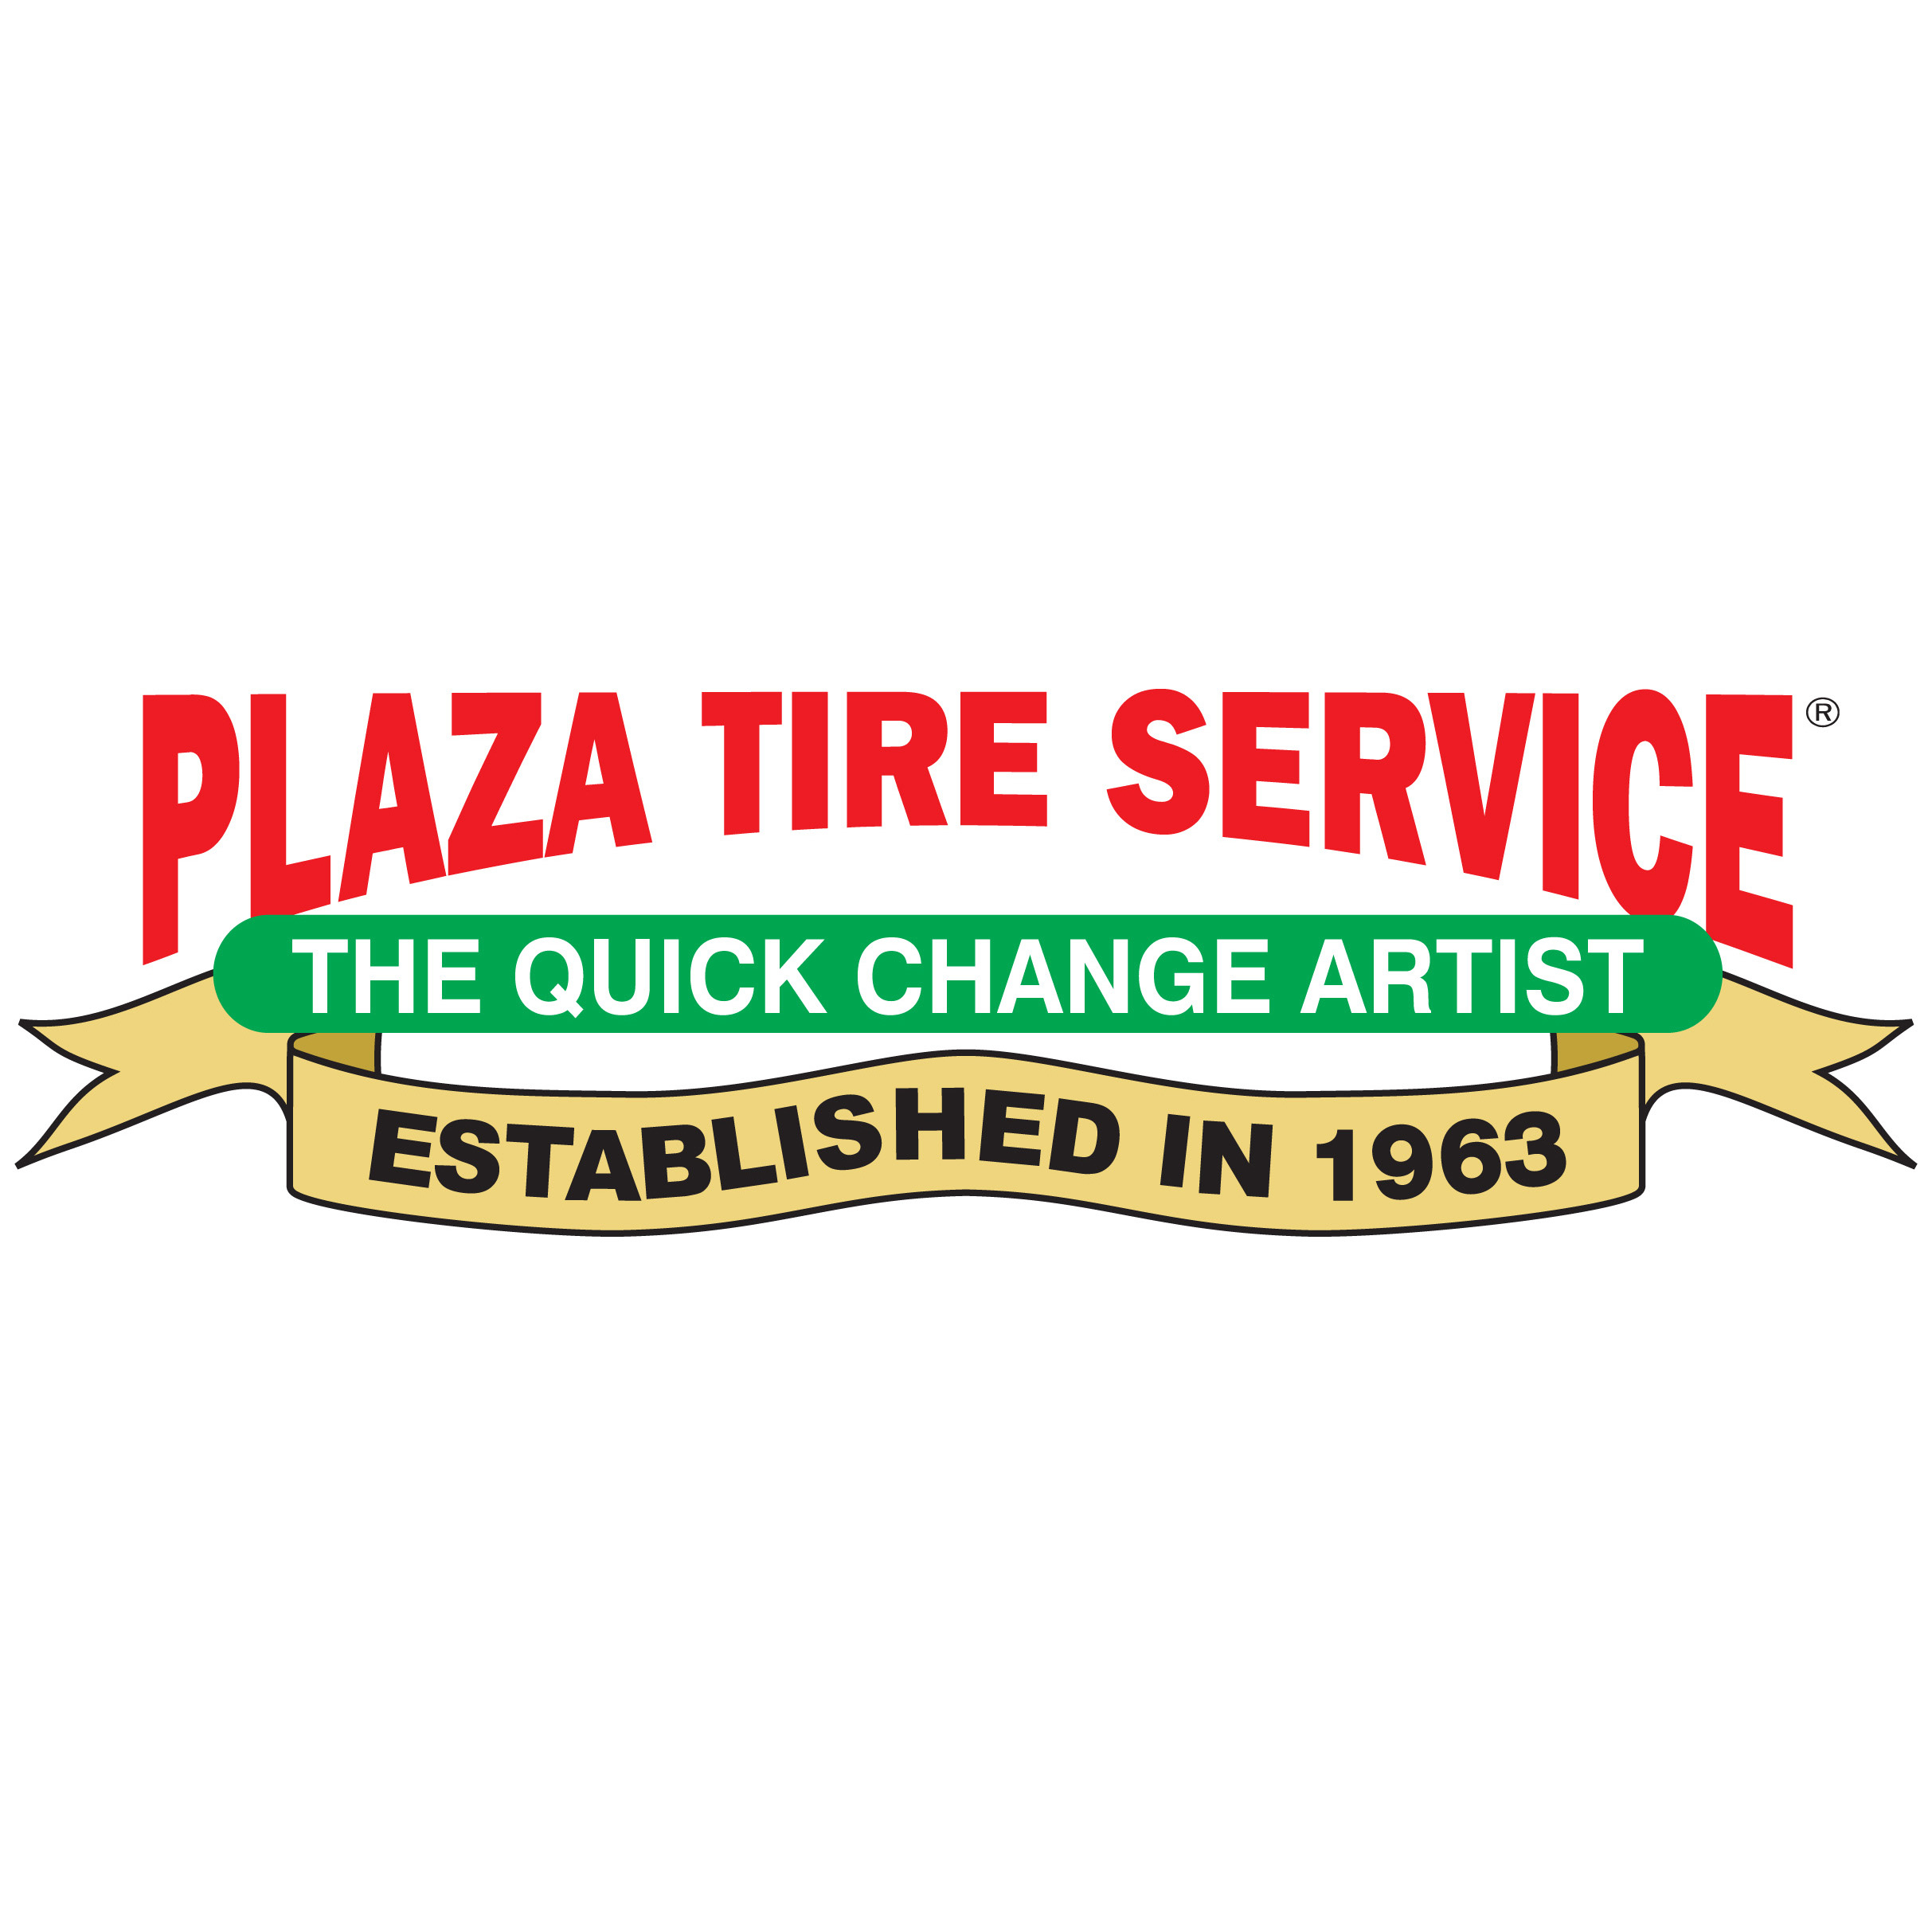 image of Plaza Tire Service